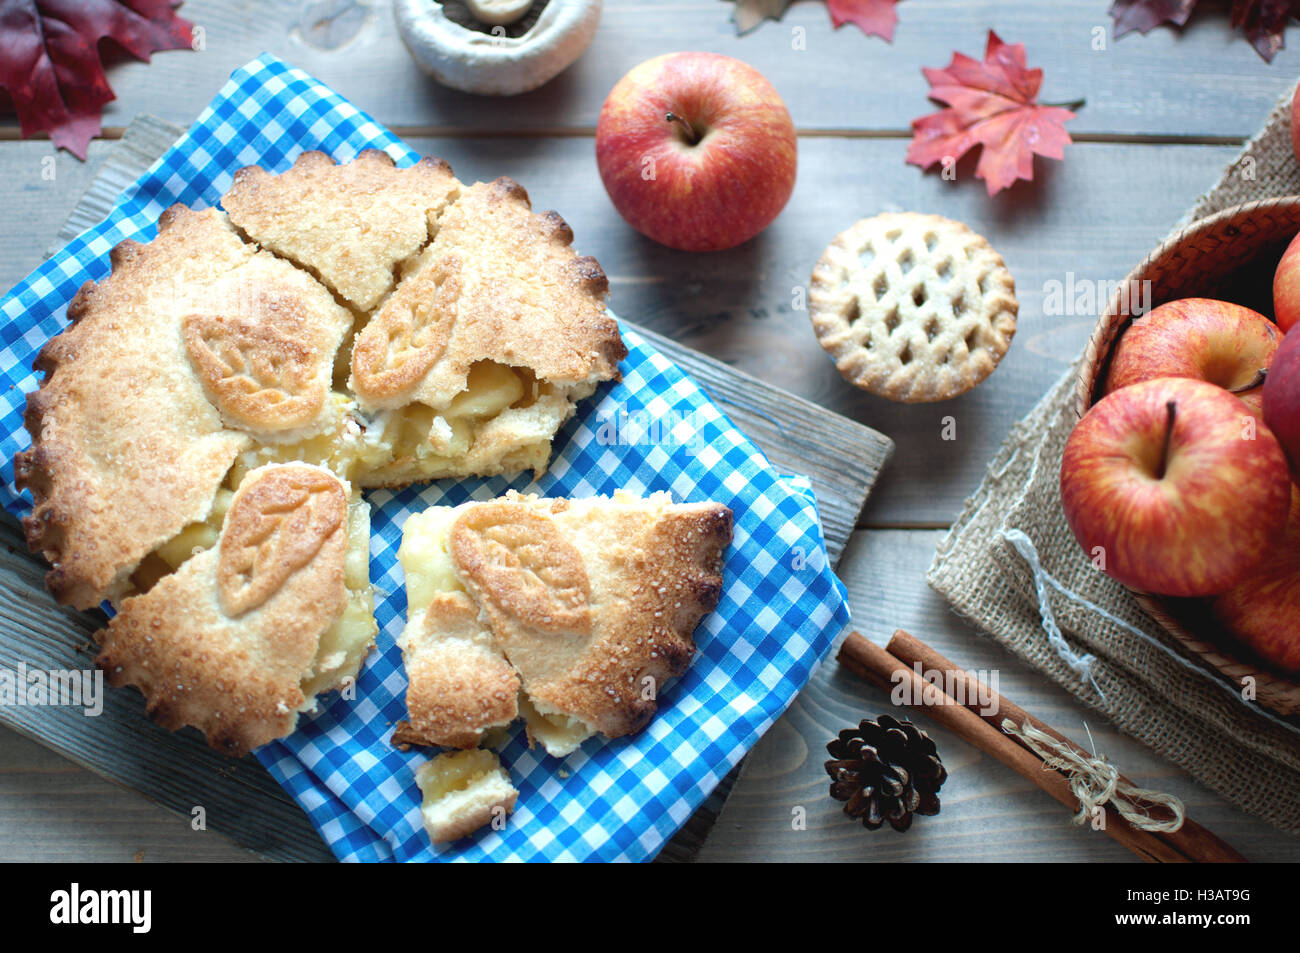 Sliced apple pie with fruit ingredients and cinammon sticks on one side - Stock Image